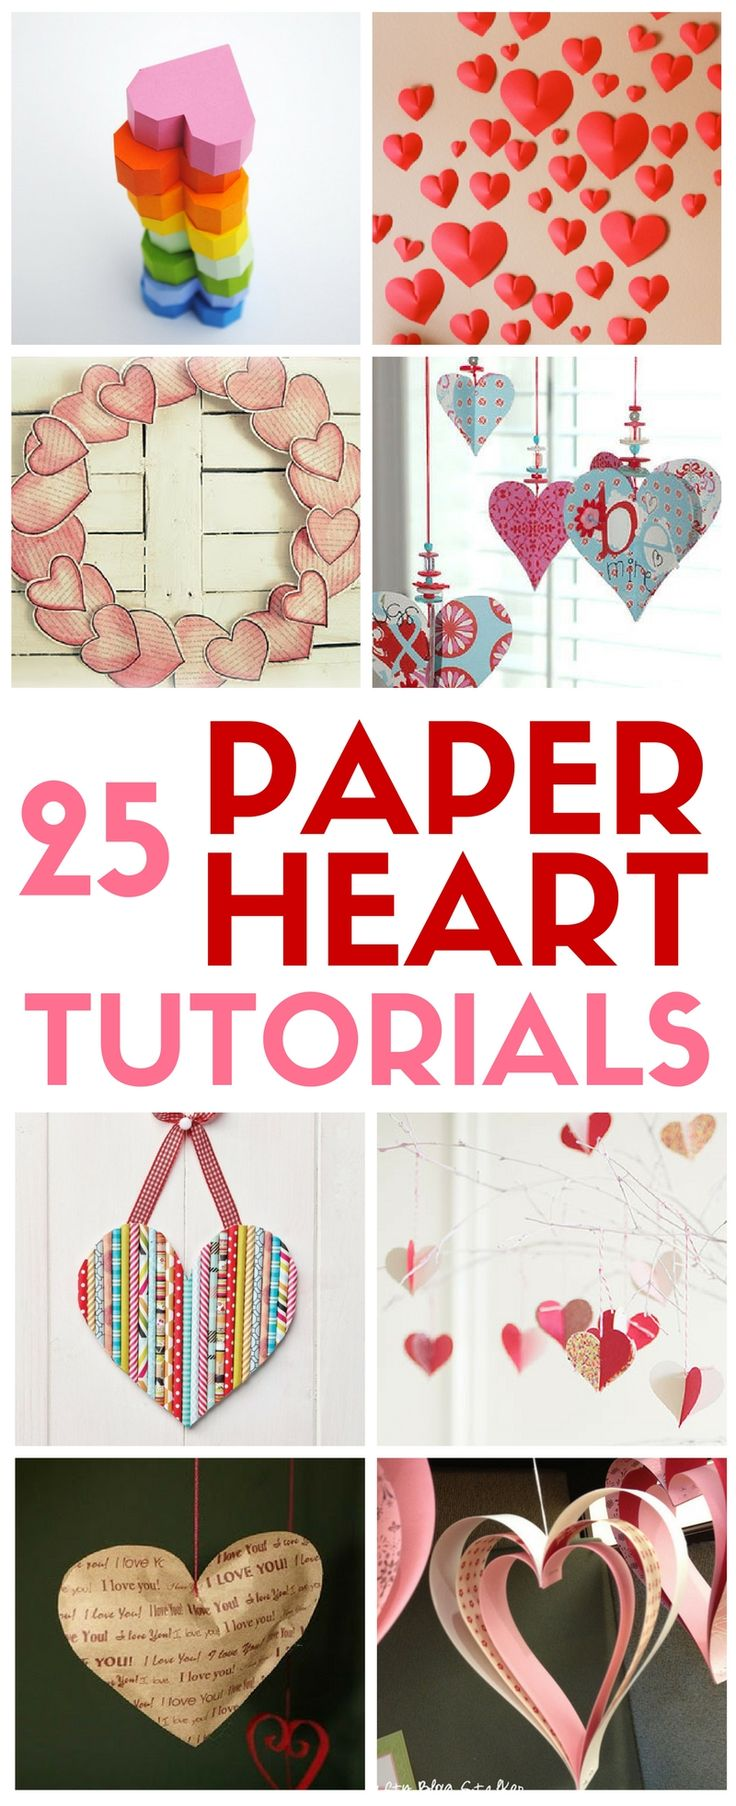 25 paper heart craft tutorials perfect for Valentine's Day! Some great crafts on here for older kids!